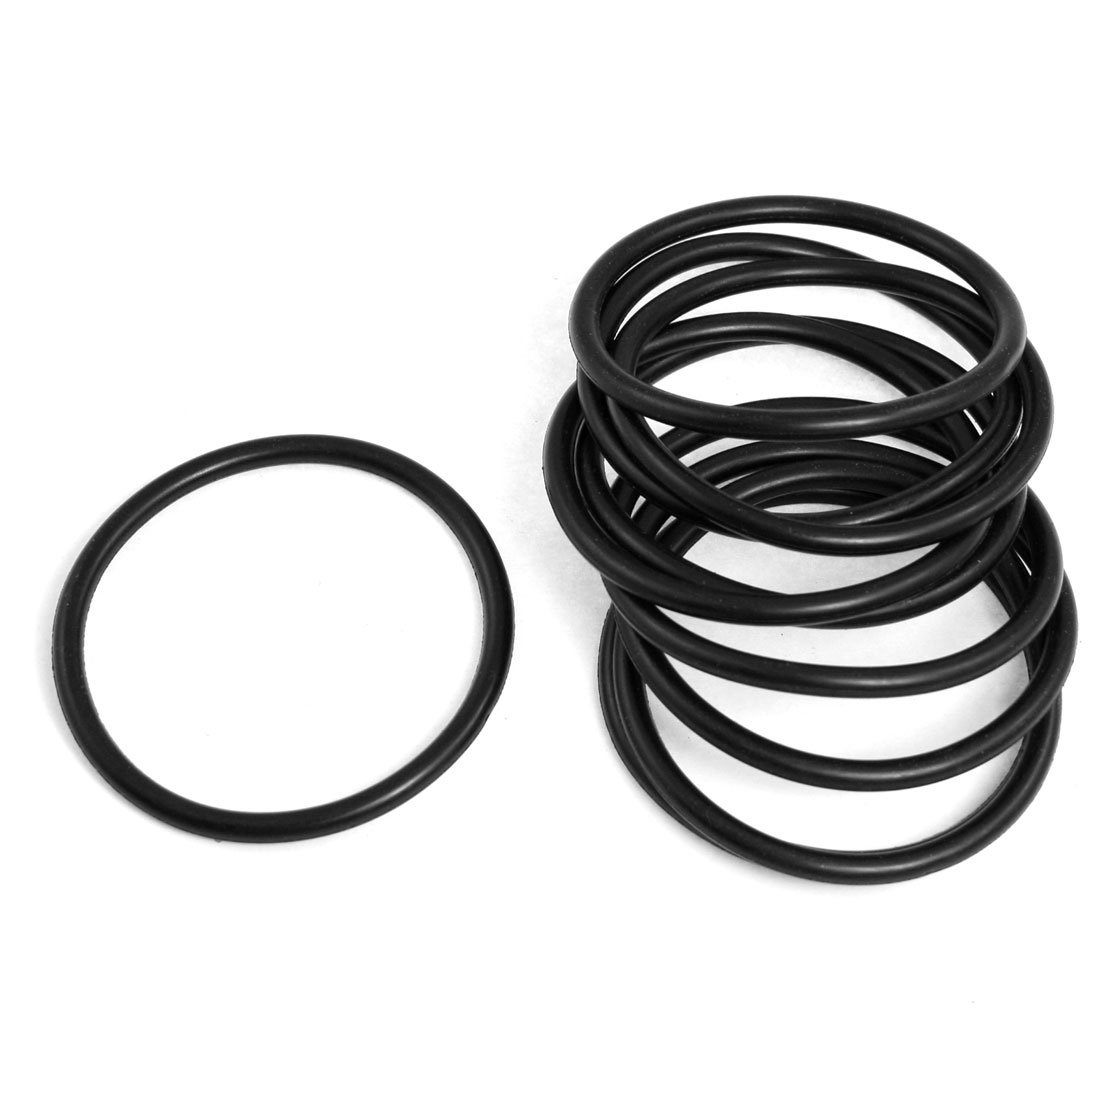 10x NBR 50mm x 4mm O Rings Hole Sealing Gaskets Washers for Automobile